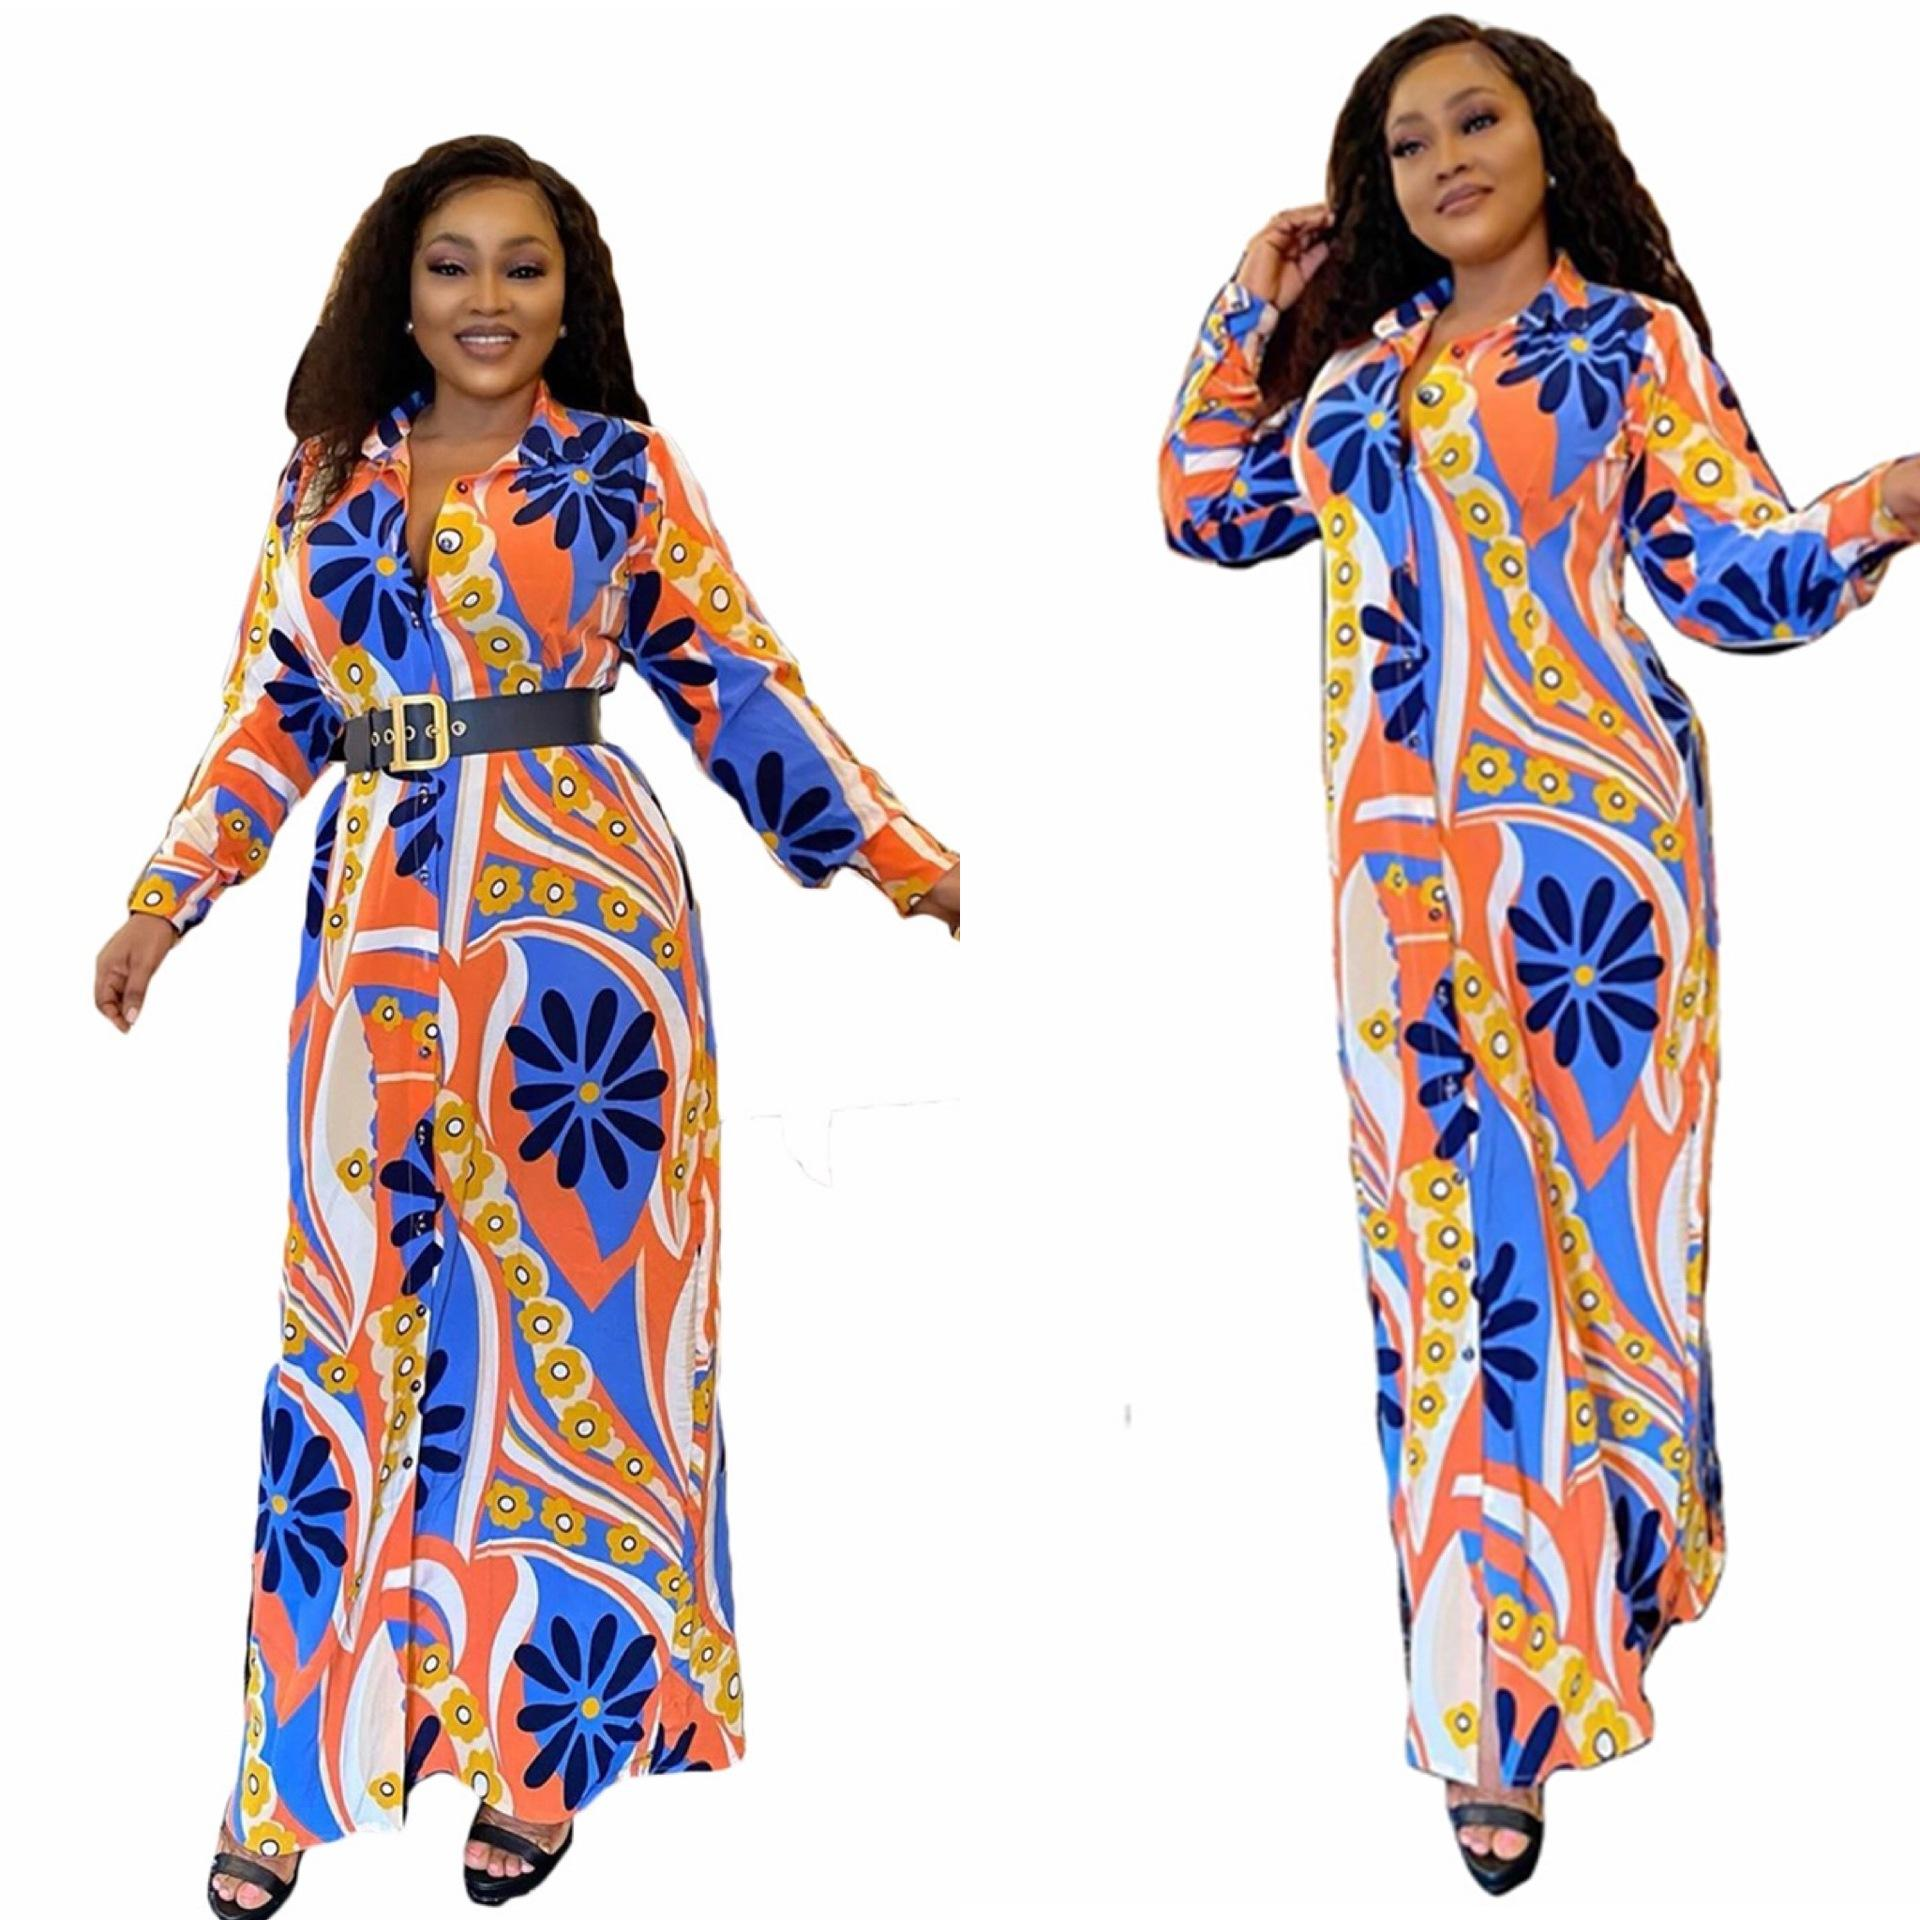 Wholesale long sleeve Africa plus size loose luxury print ladies 2020 elegant dresses for women